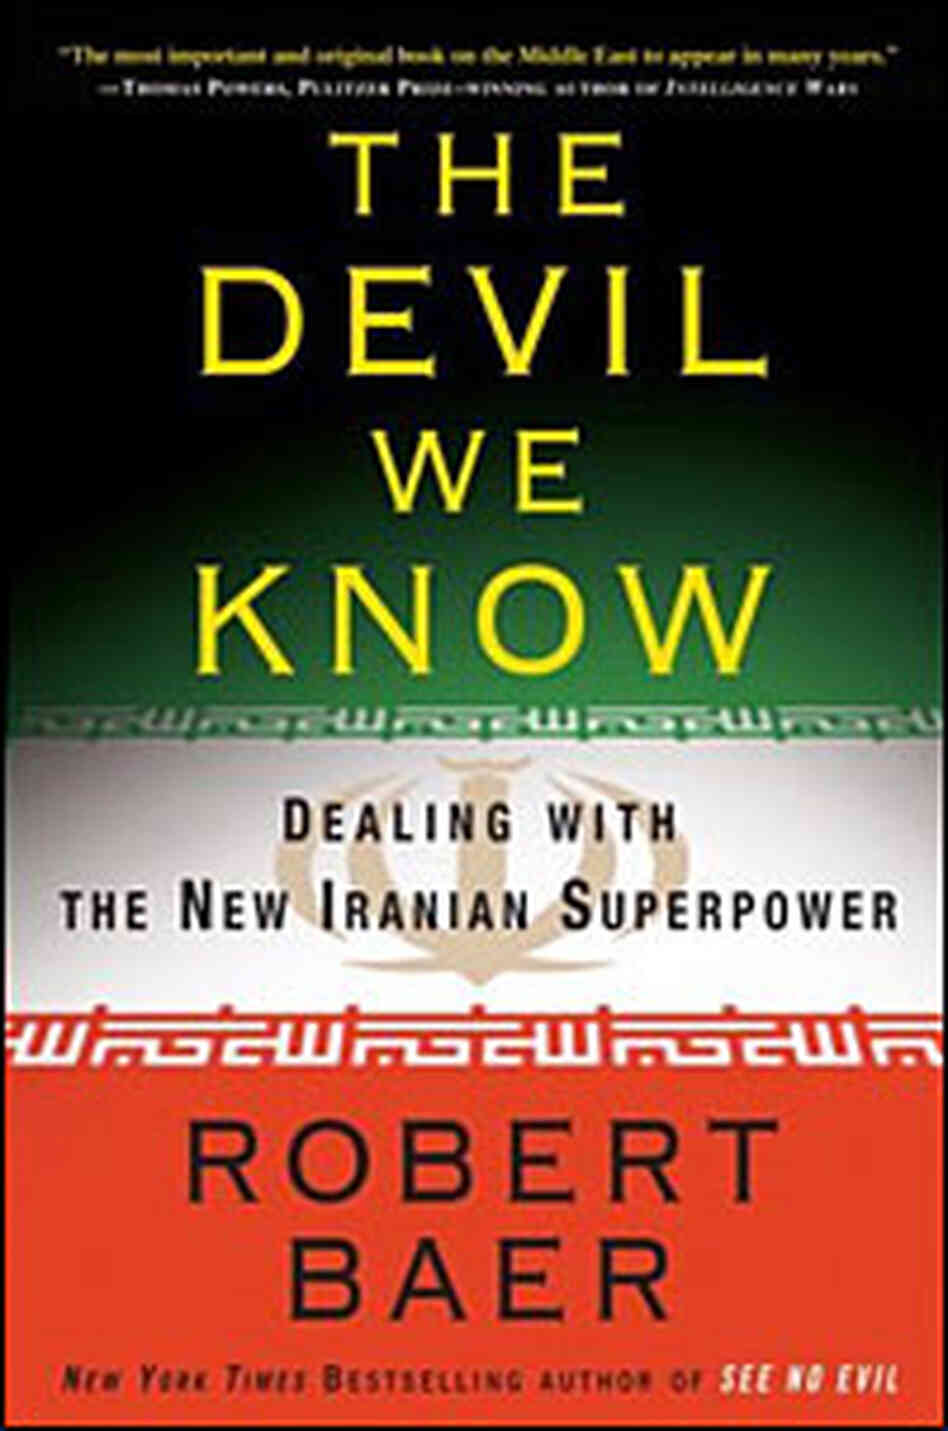 The Devil We Know: Dealing with the New Iranian Superpower Robert Baer